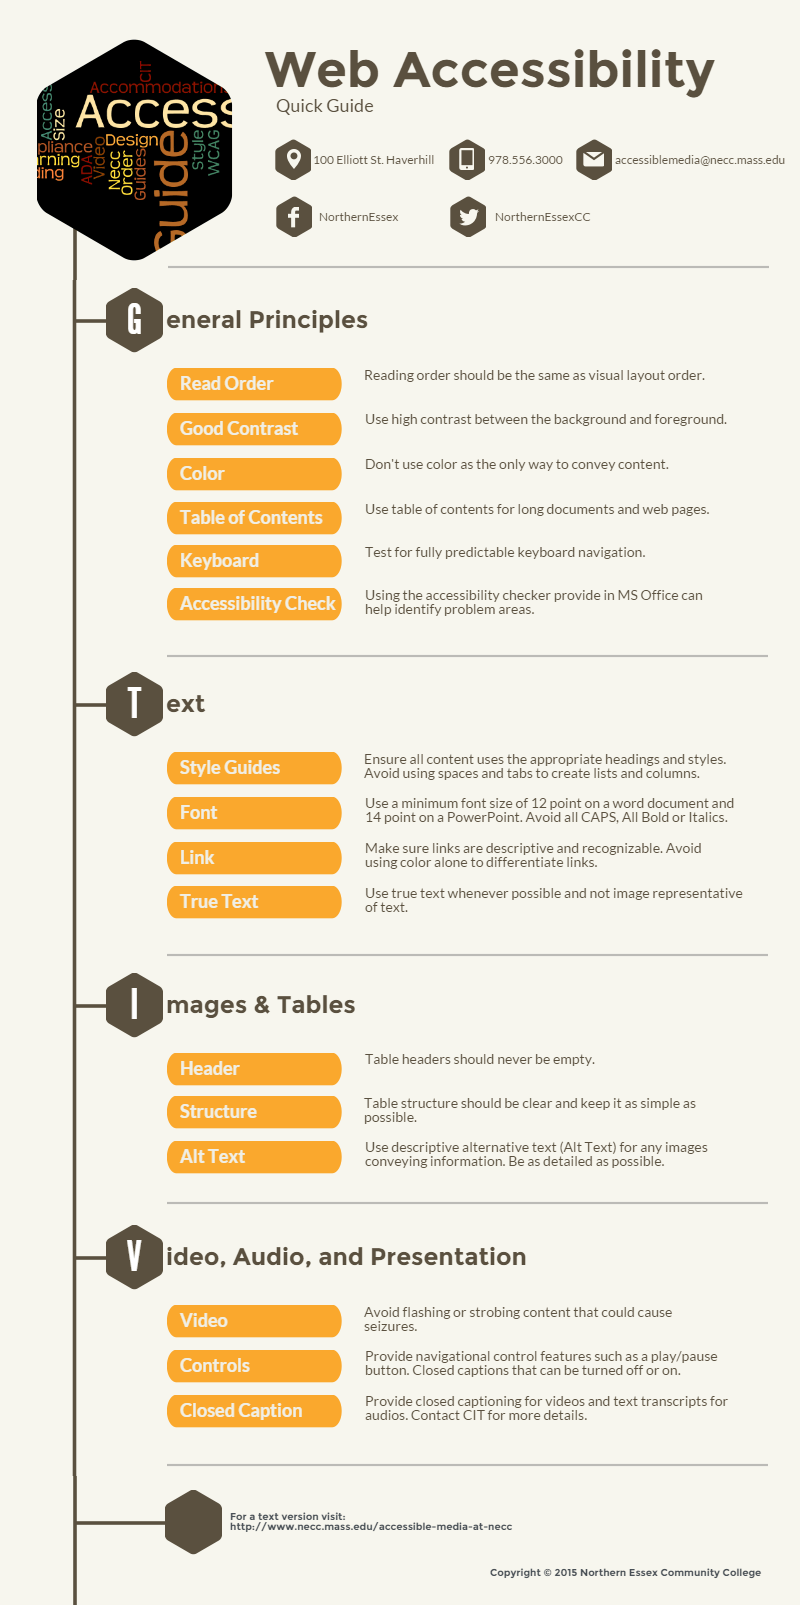 Infographic Web Accessibility Quick Guide with text description below.